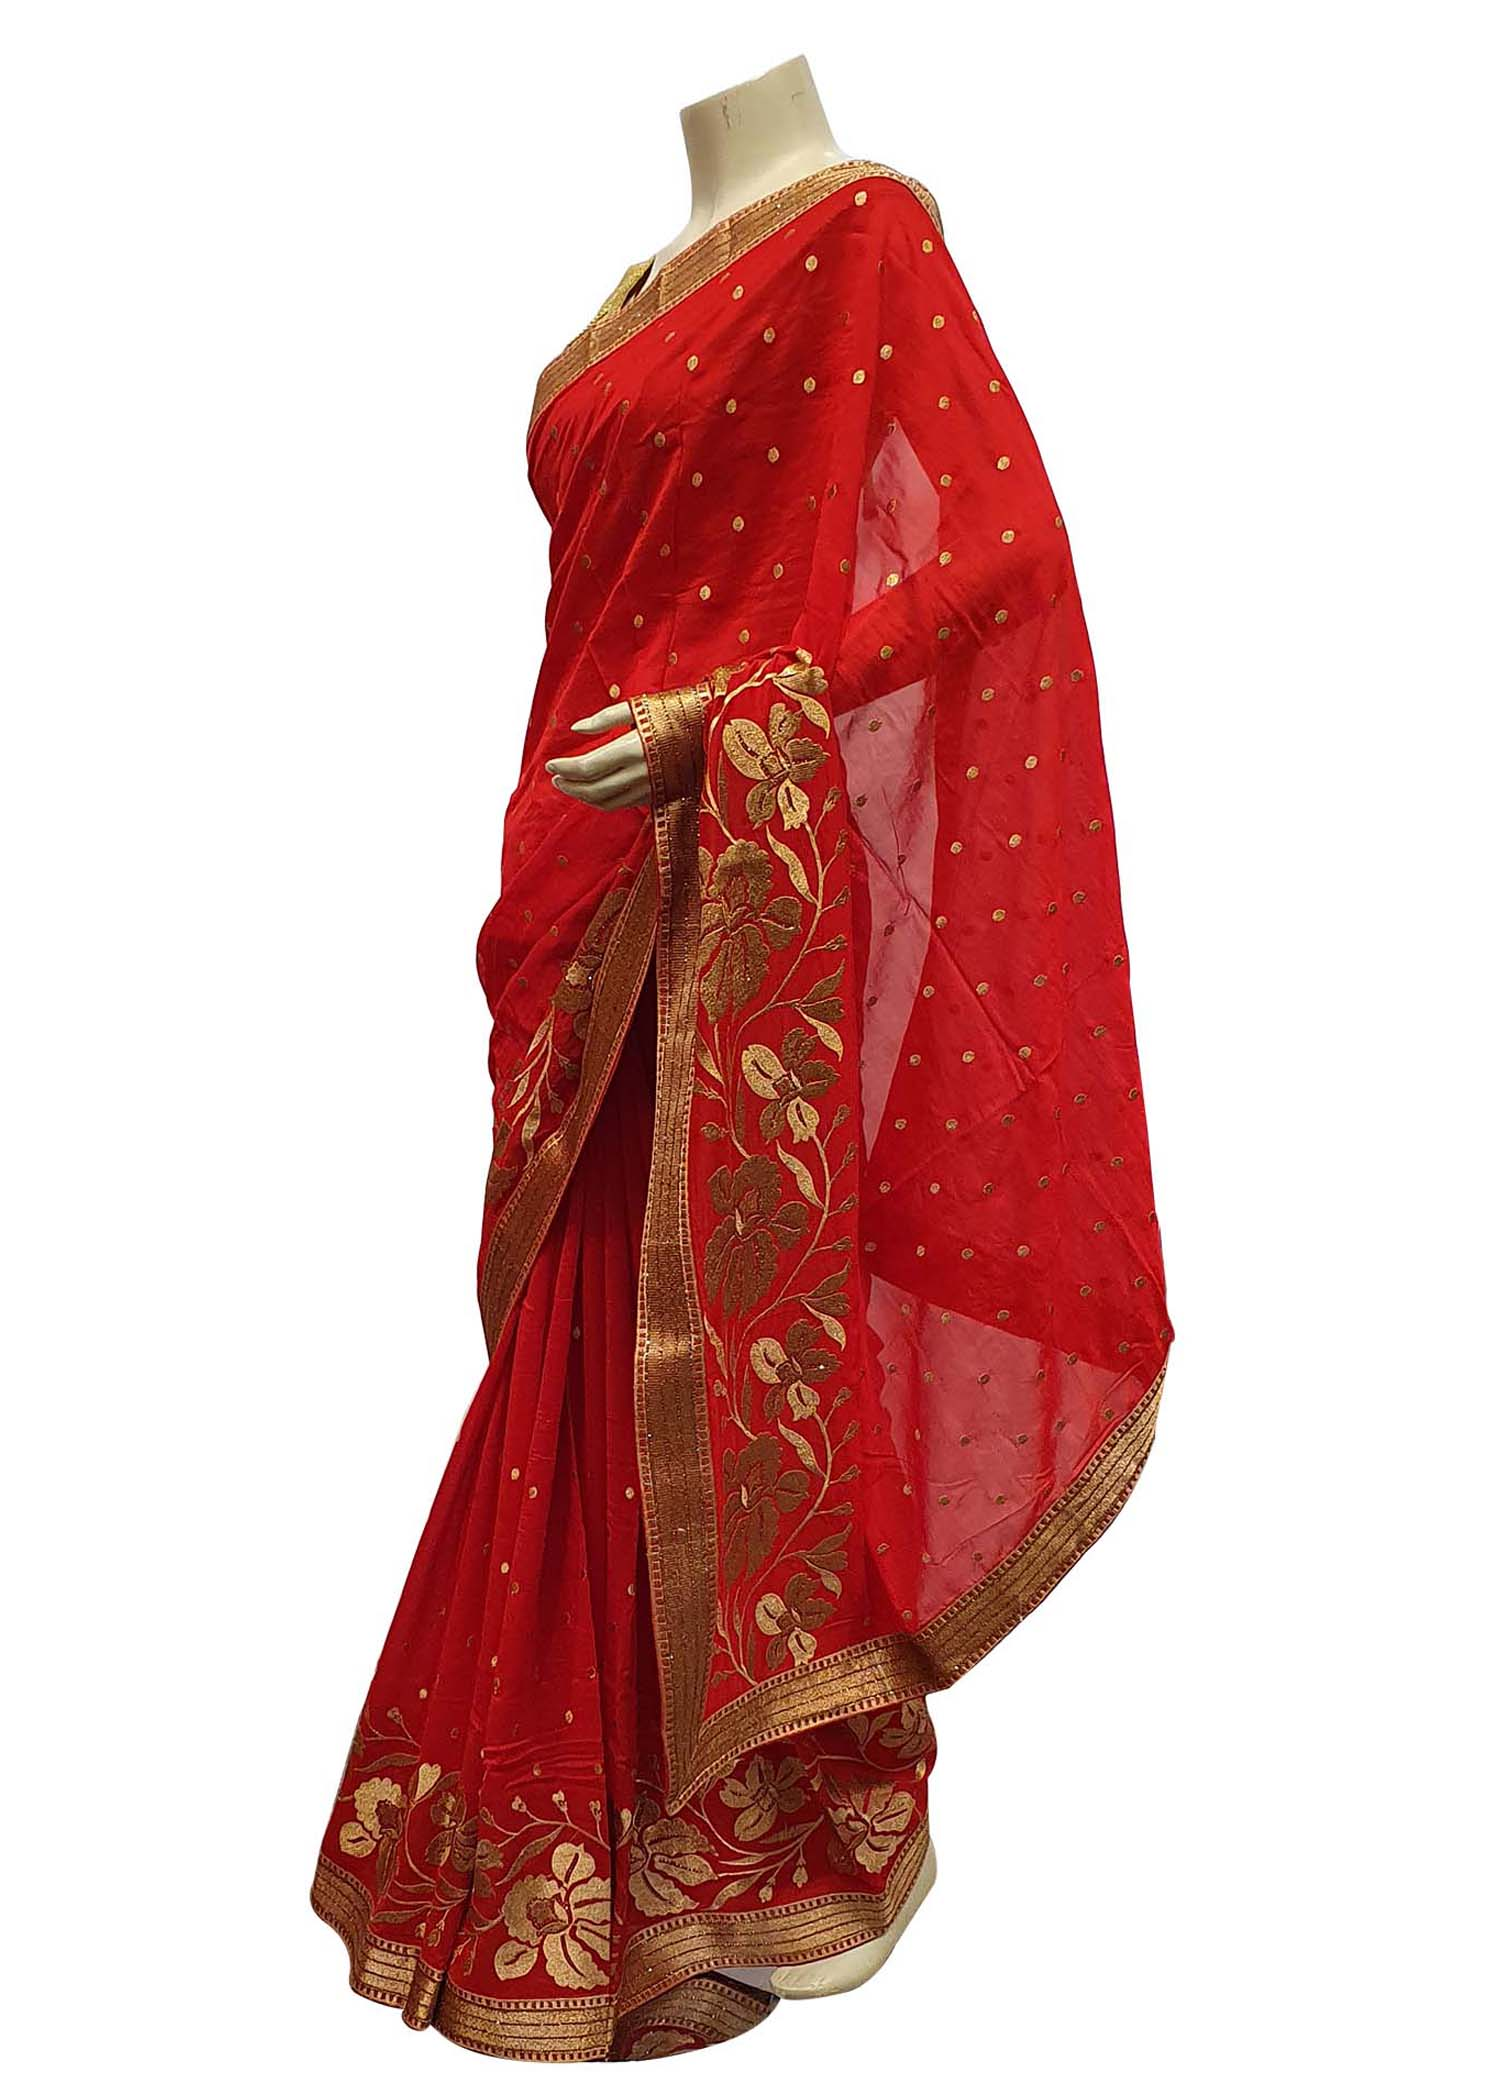 Red Georgette Saree With Gold Zari Flower Embroidered Border And Gold Sequin Butties All Over